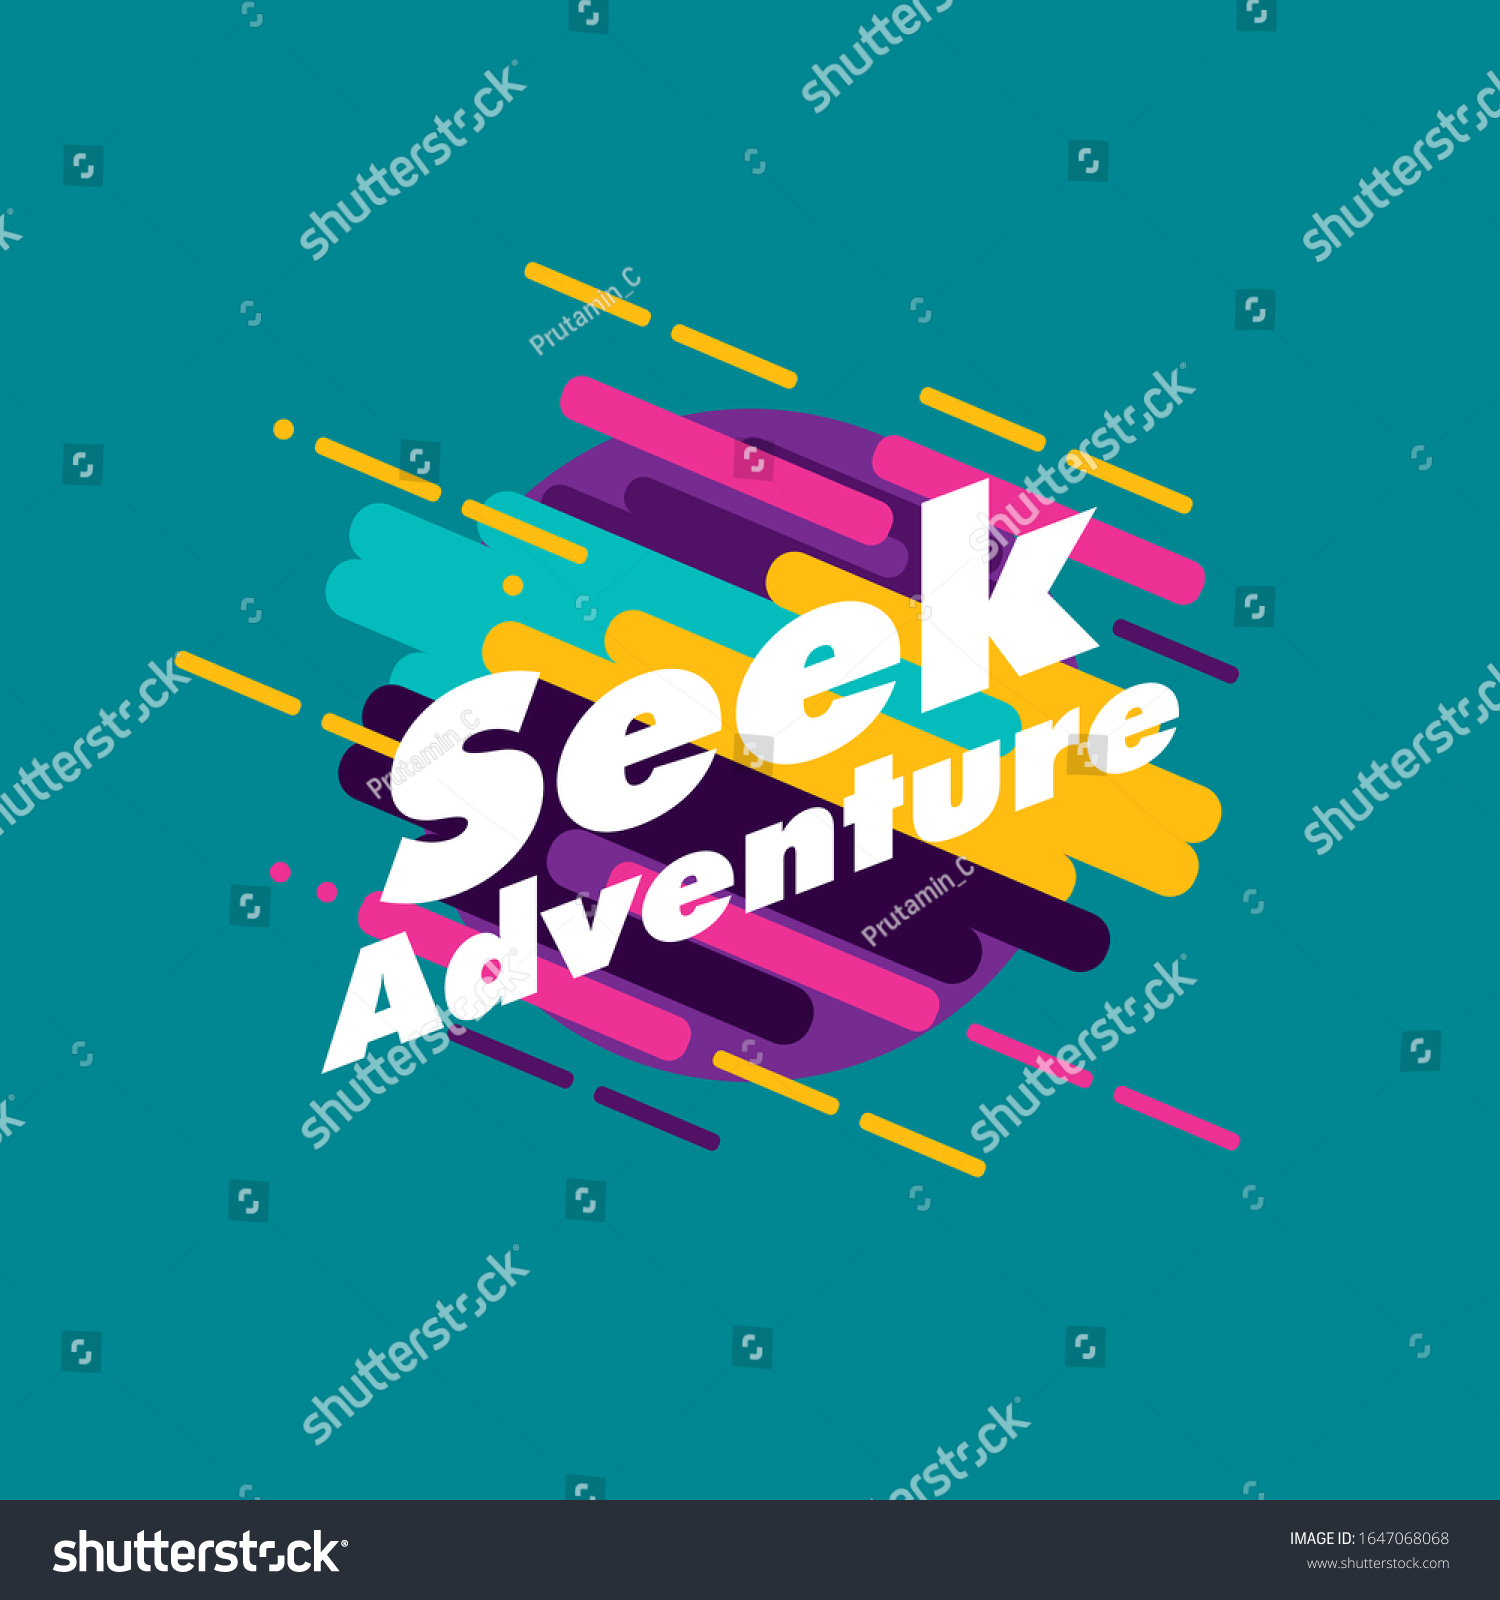 stock-vector-seek-adventure-beautiful-gr